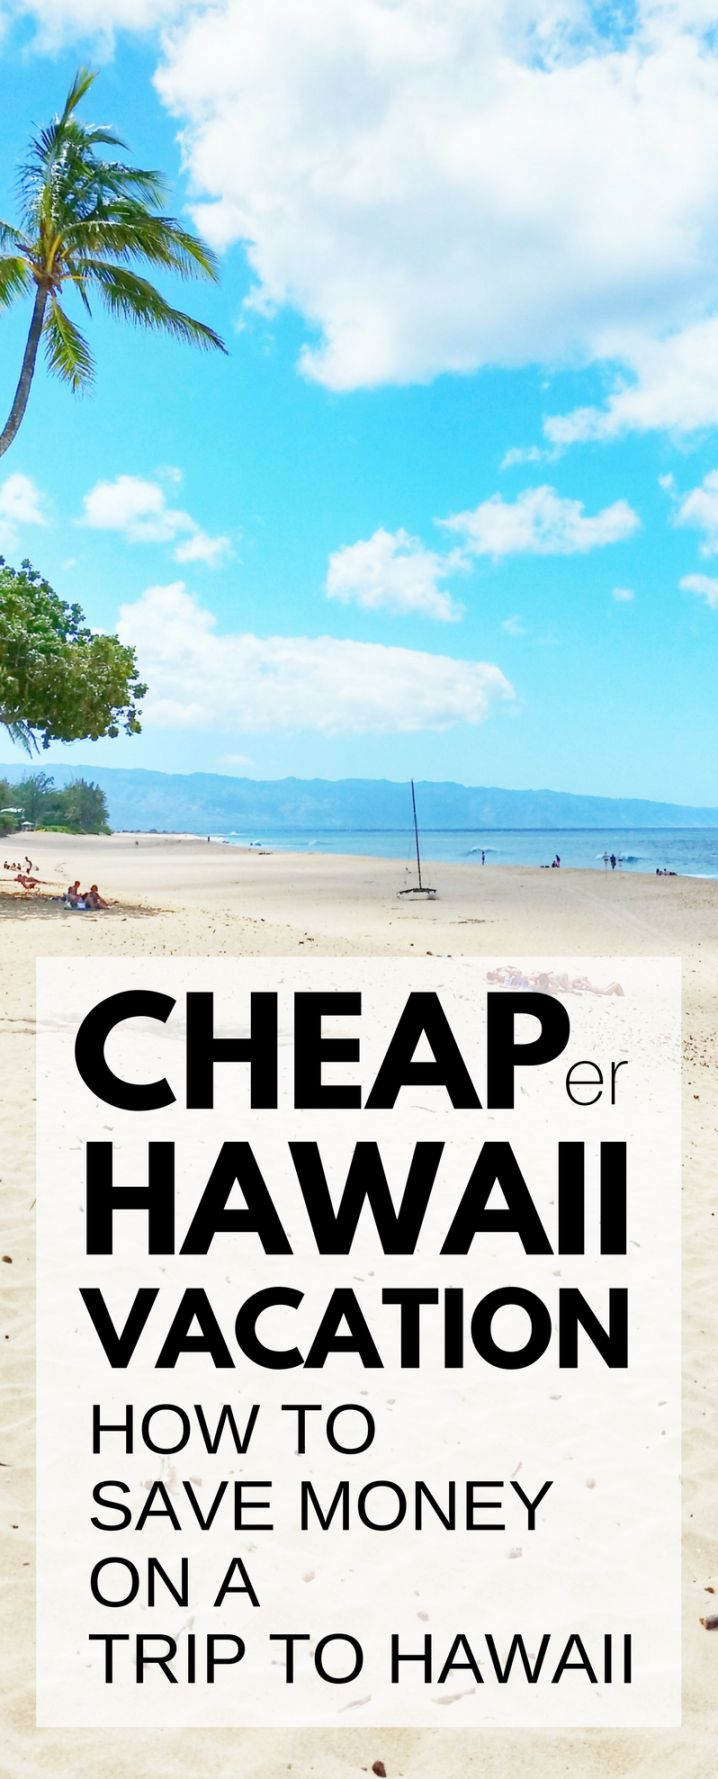 Travel tips for a cheap Hawaii vacation. How to save money on a trip to Hawaii. Things to do on a budget in Oahu, Maui, Kauai, Big Island. Beaches, snorkeling, hiking! What you pack, wear can add costs for Hawaii packing list, but cheap (er) flights, hotels (airbnb vacation rentals), food, free activities. USA bucket list destination with Waikiki, North Shore! Budget travel tips. Honeymoon destinations for two. Dream beach vacations. #hawaii #oahu #kauai #maui #bigisland #BudgetVacation